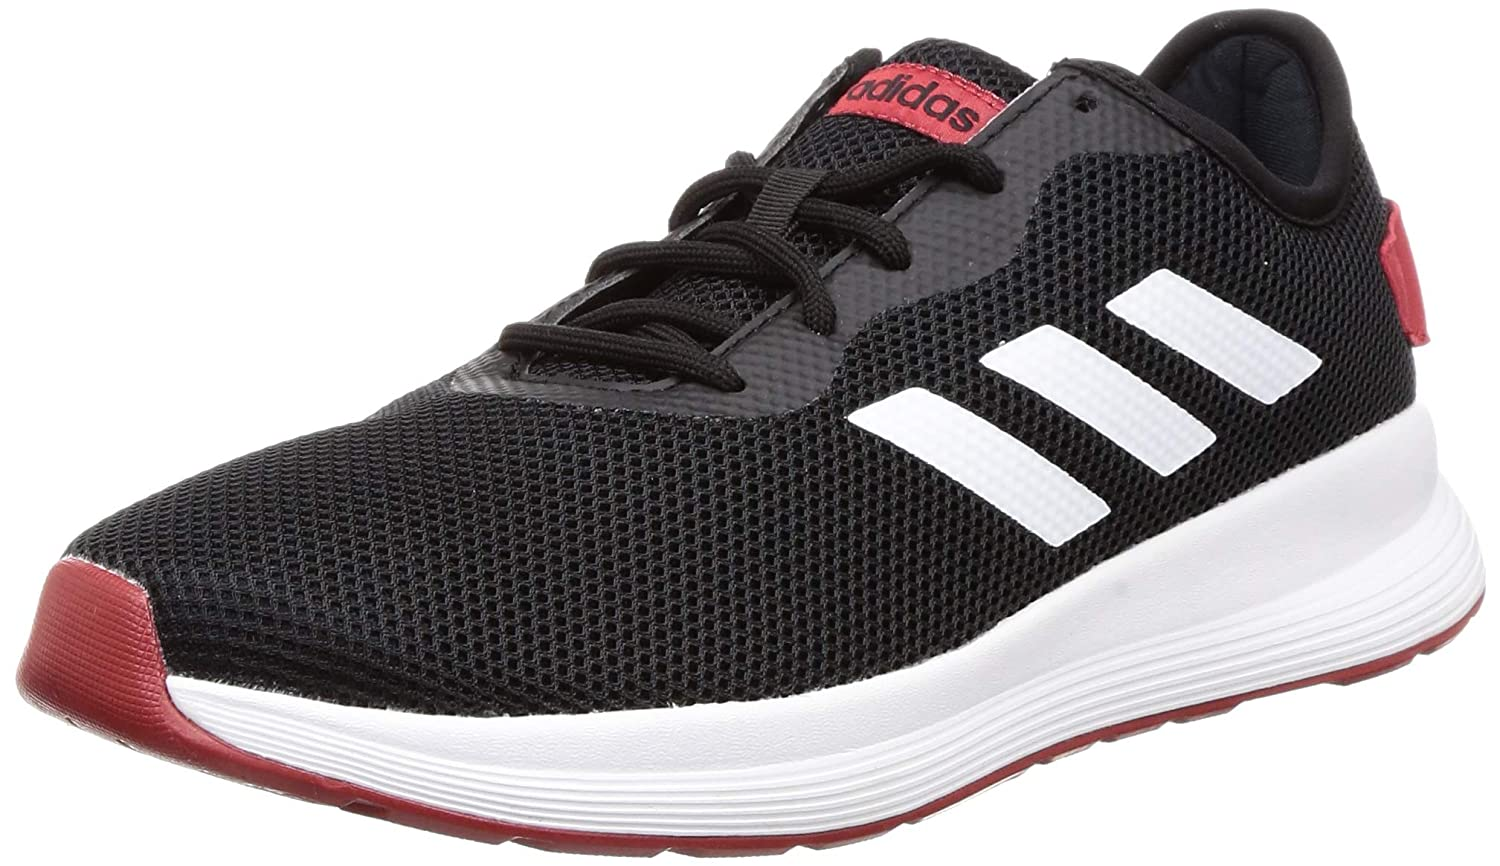 Adidas breathable running shoes under 2000 for men